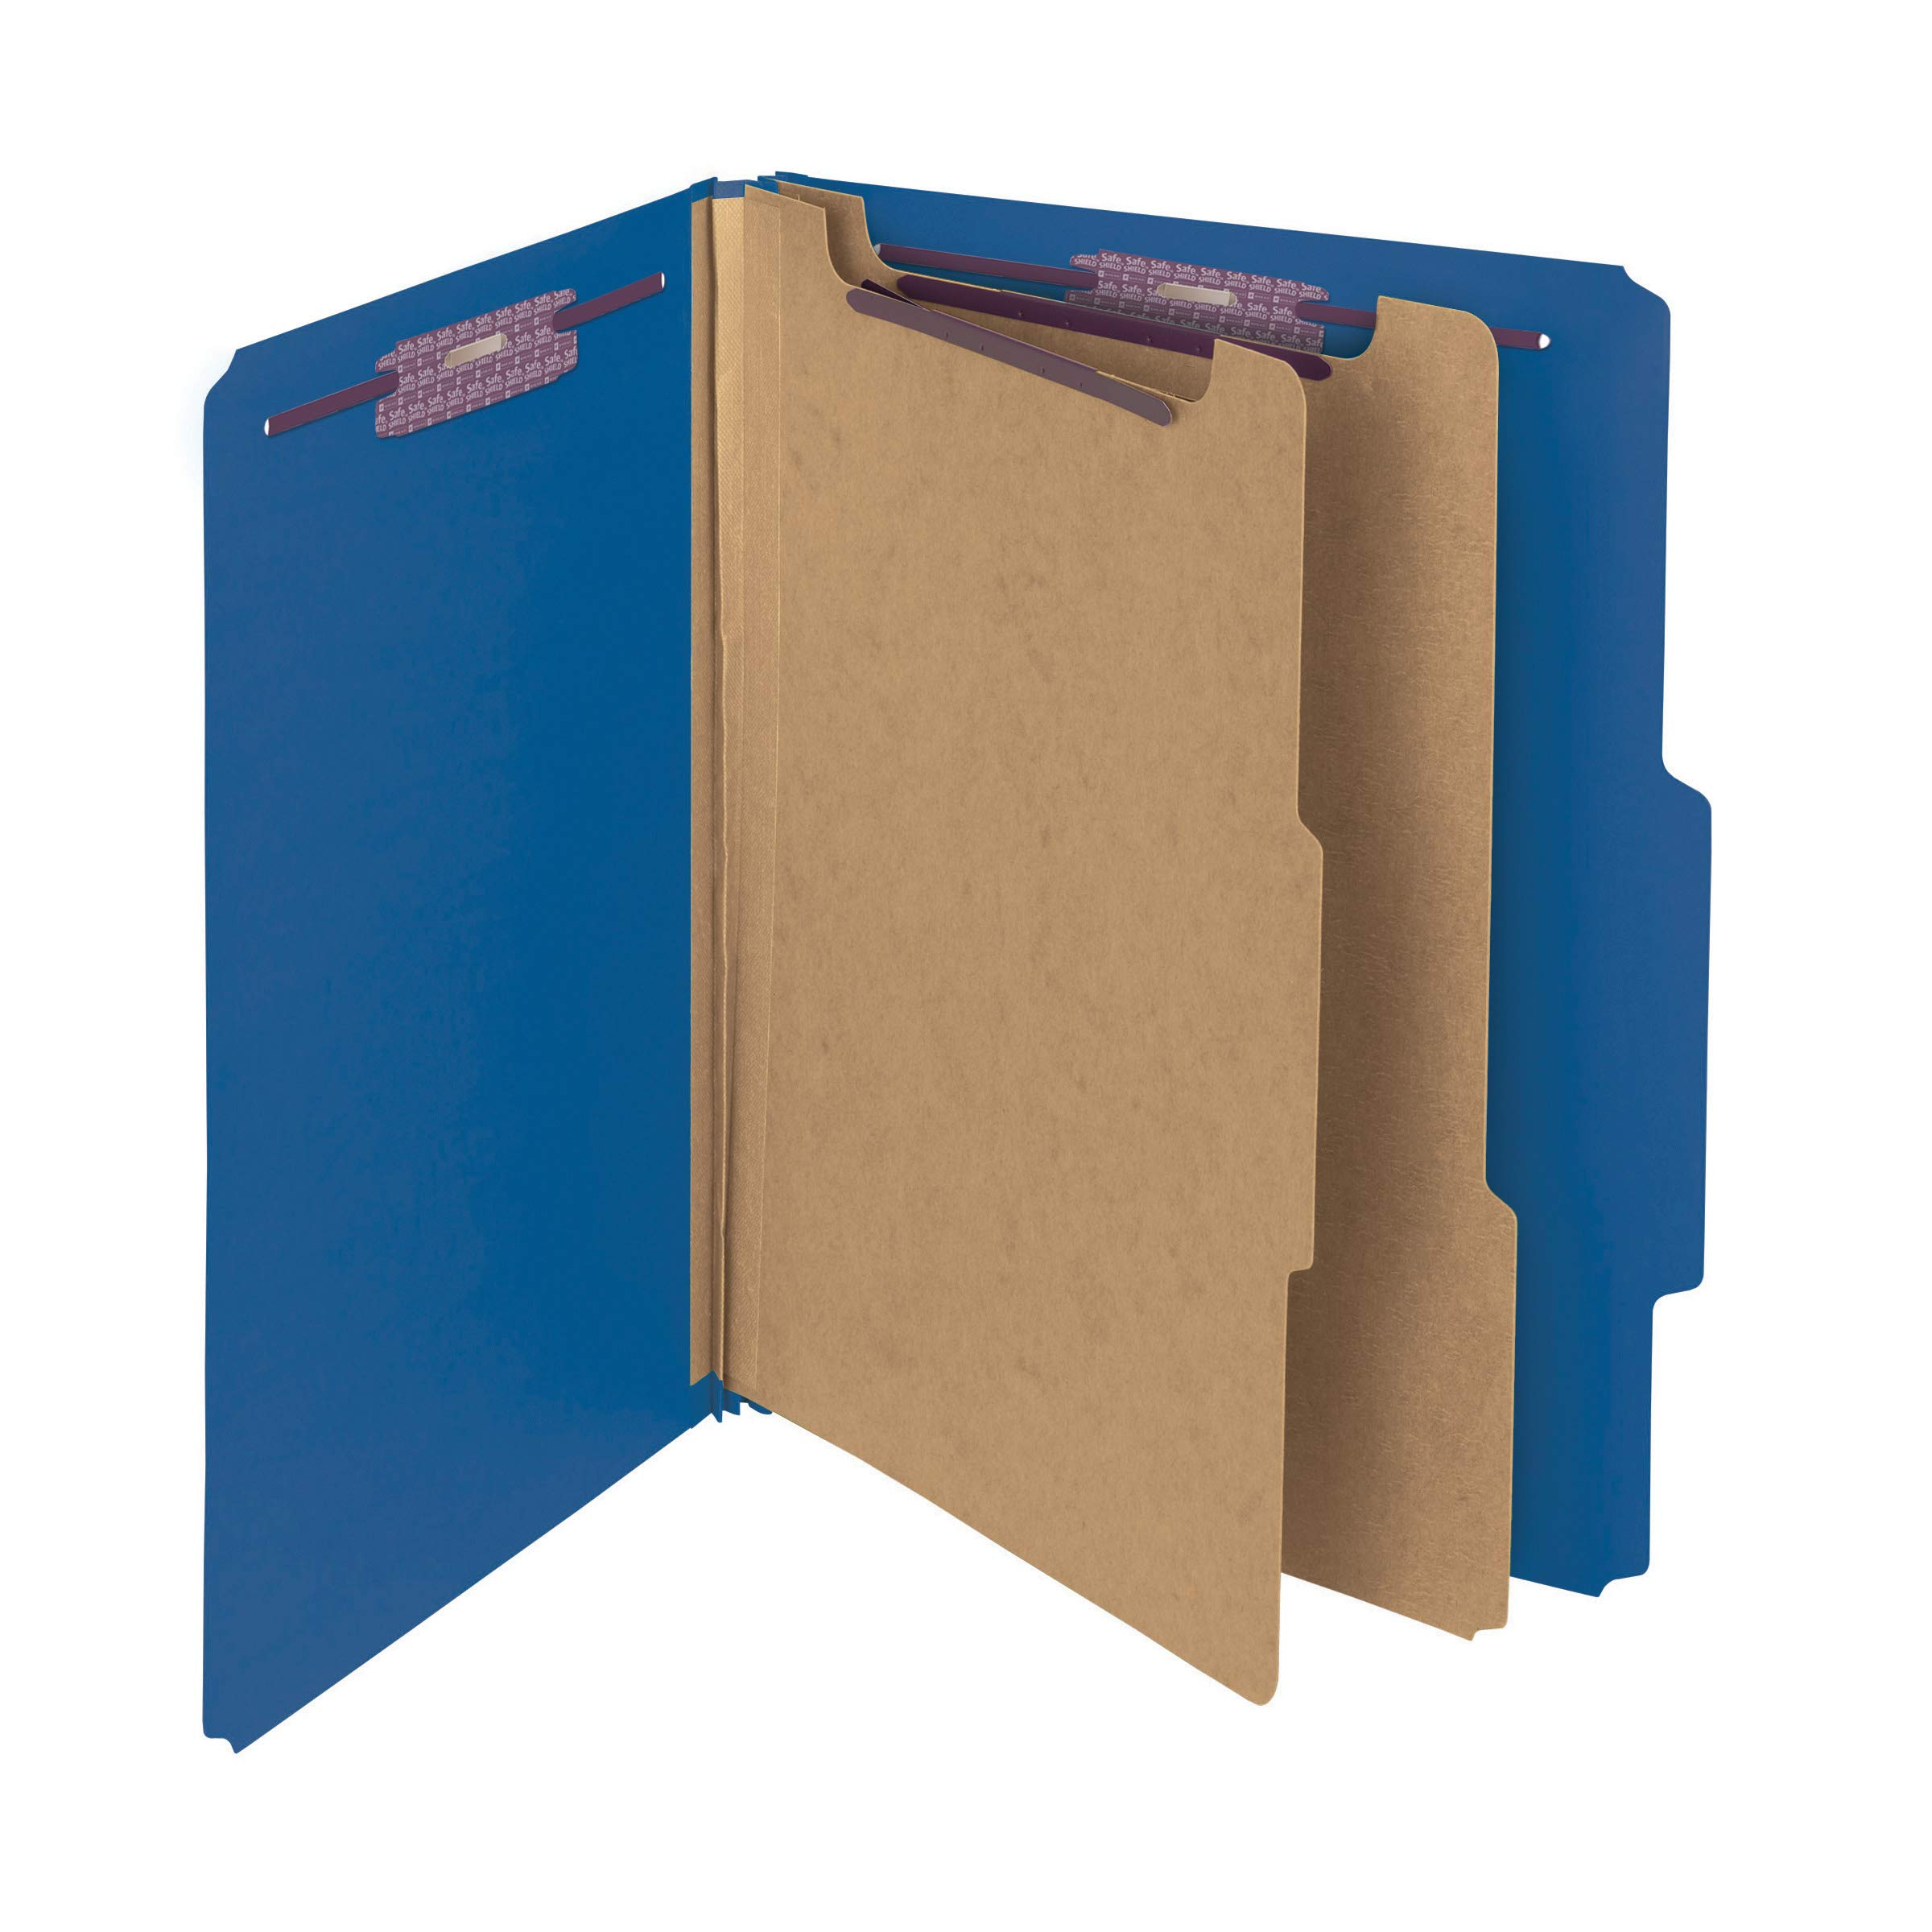 Smead Pressboard Classification File Folder with SafeSHIELD Fasteners, 2 Dividers, 2'' Expansion, Letter Size, Dark Blue, 10 per Box (14032) by Smead